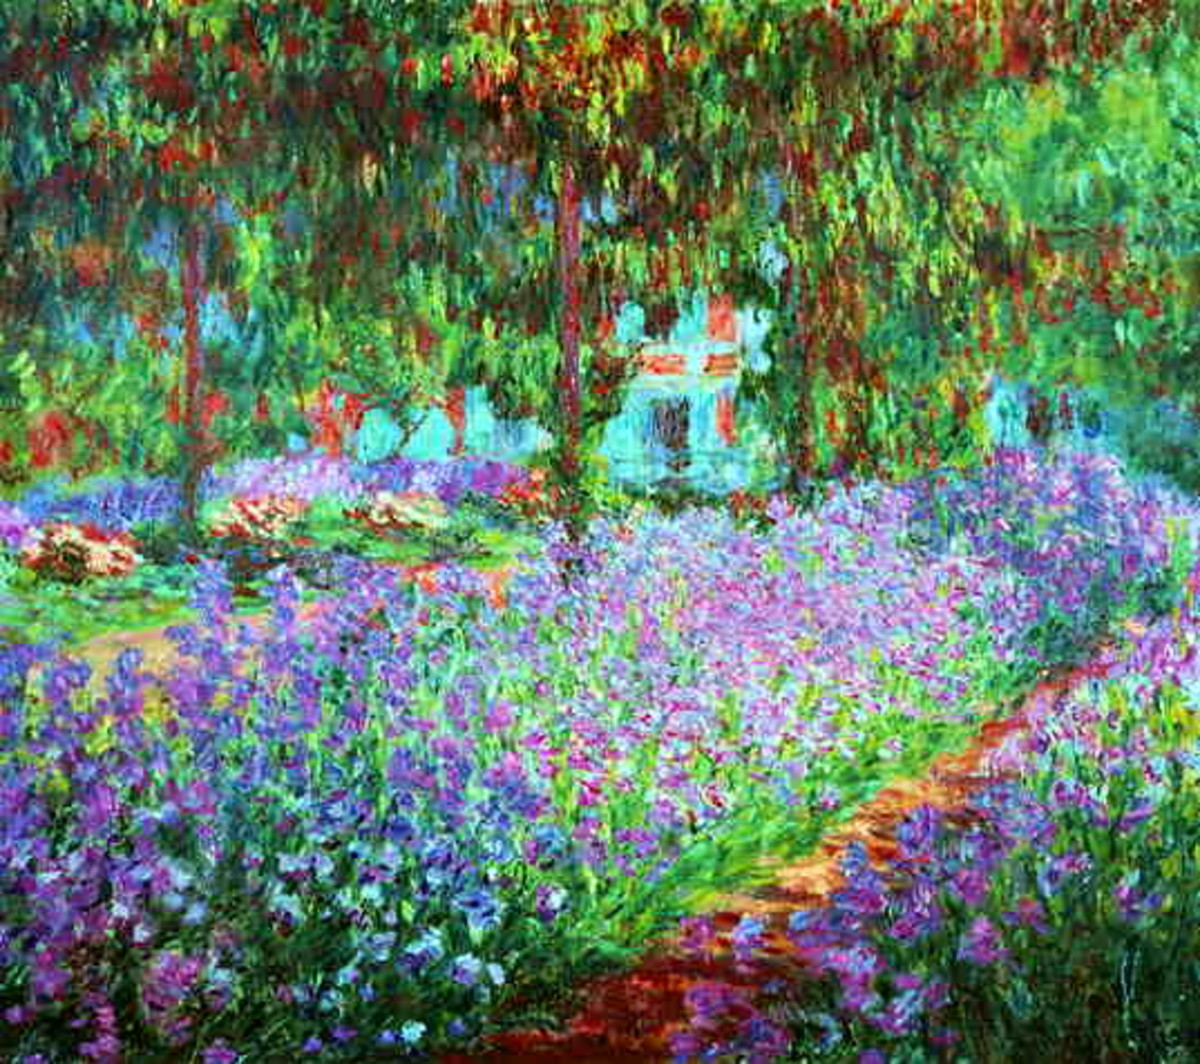 Chasing Claude Monet: Giverny and the art of living